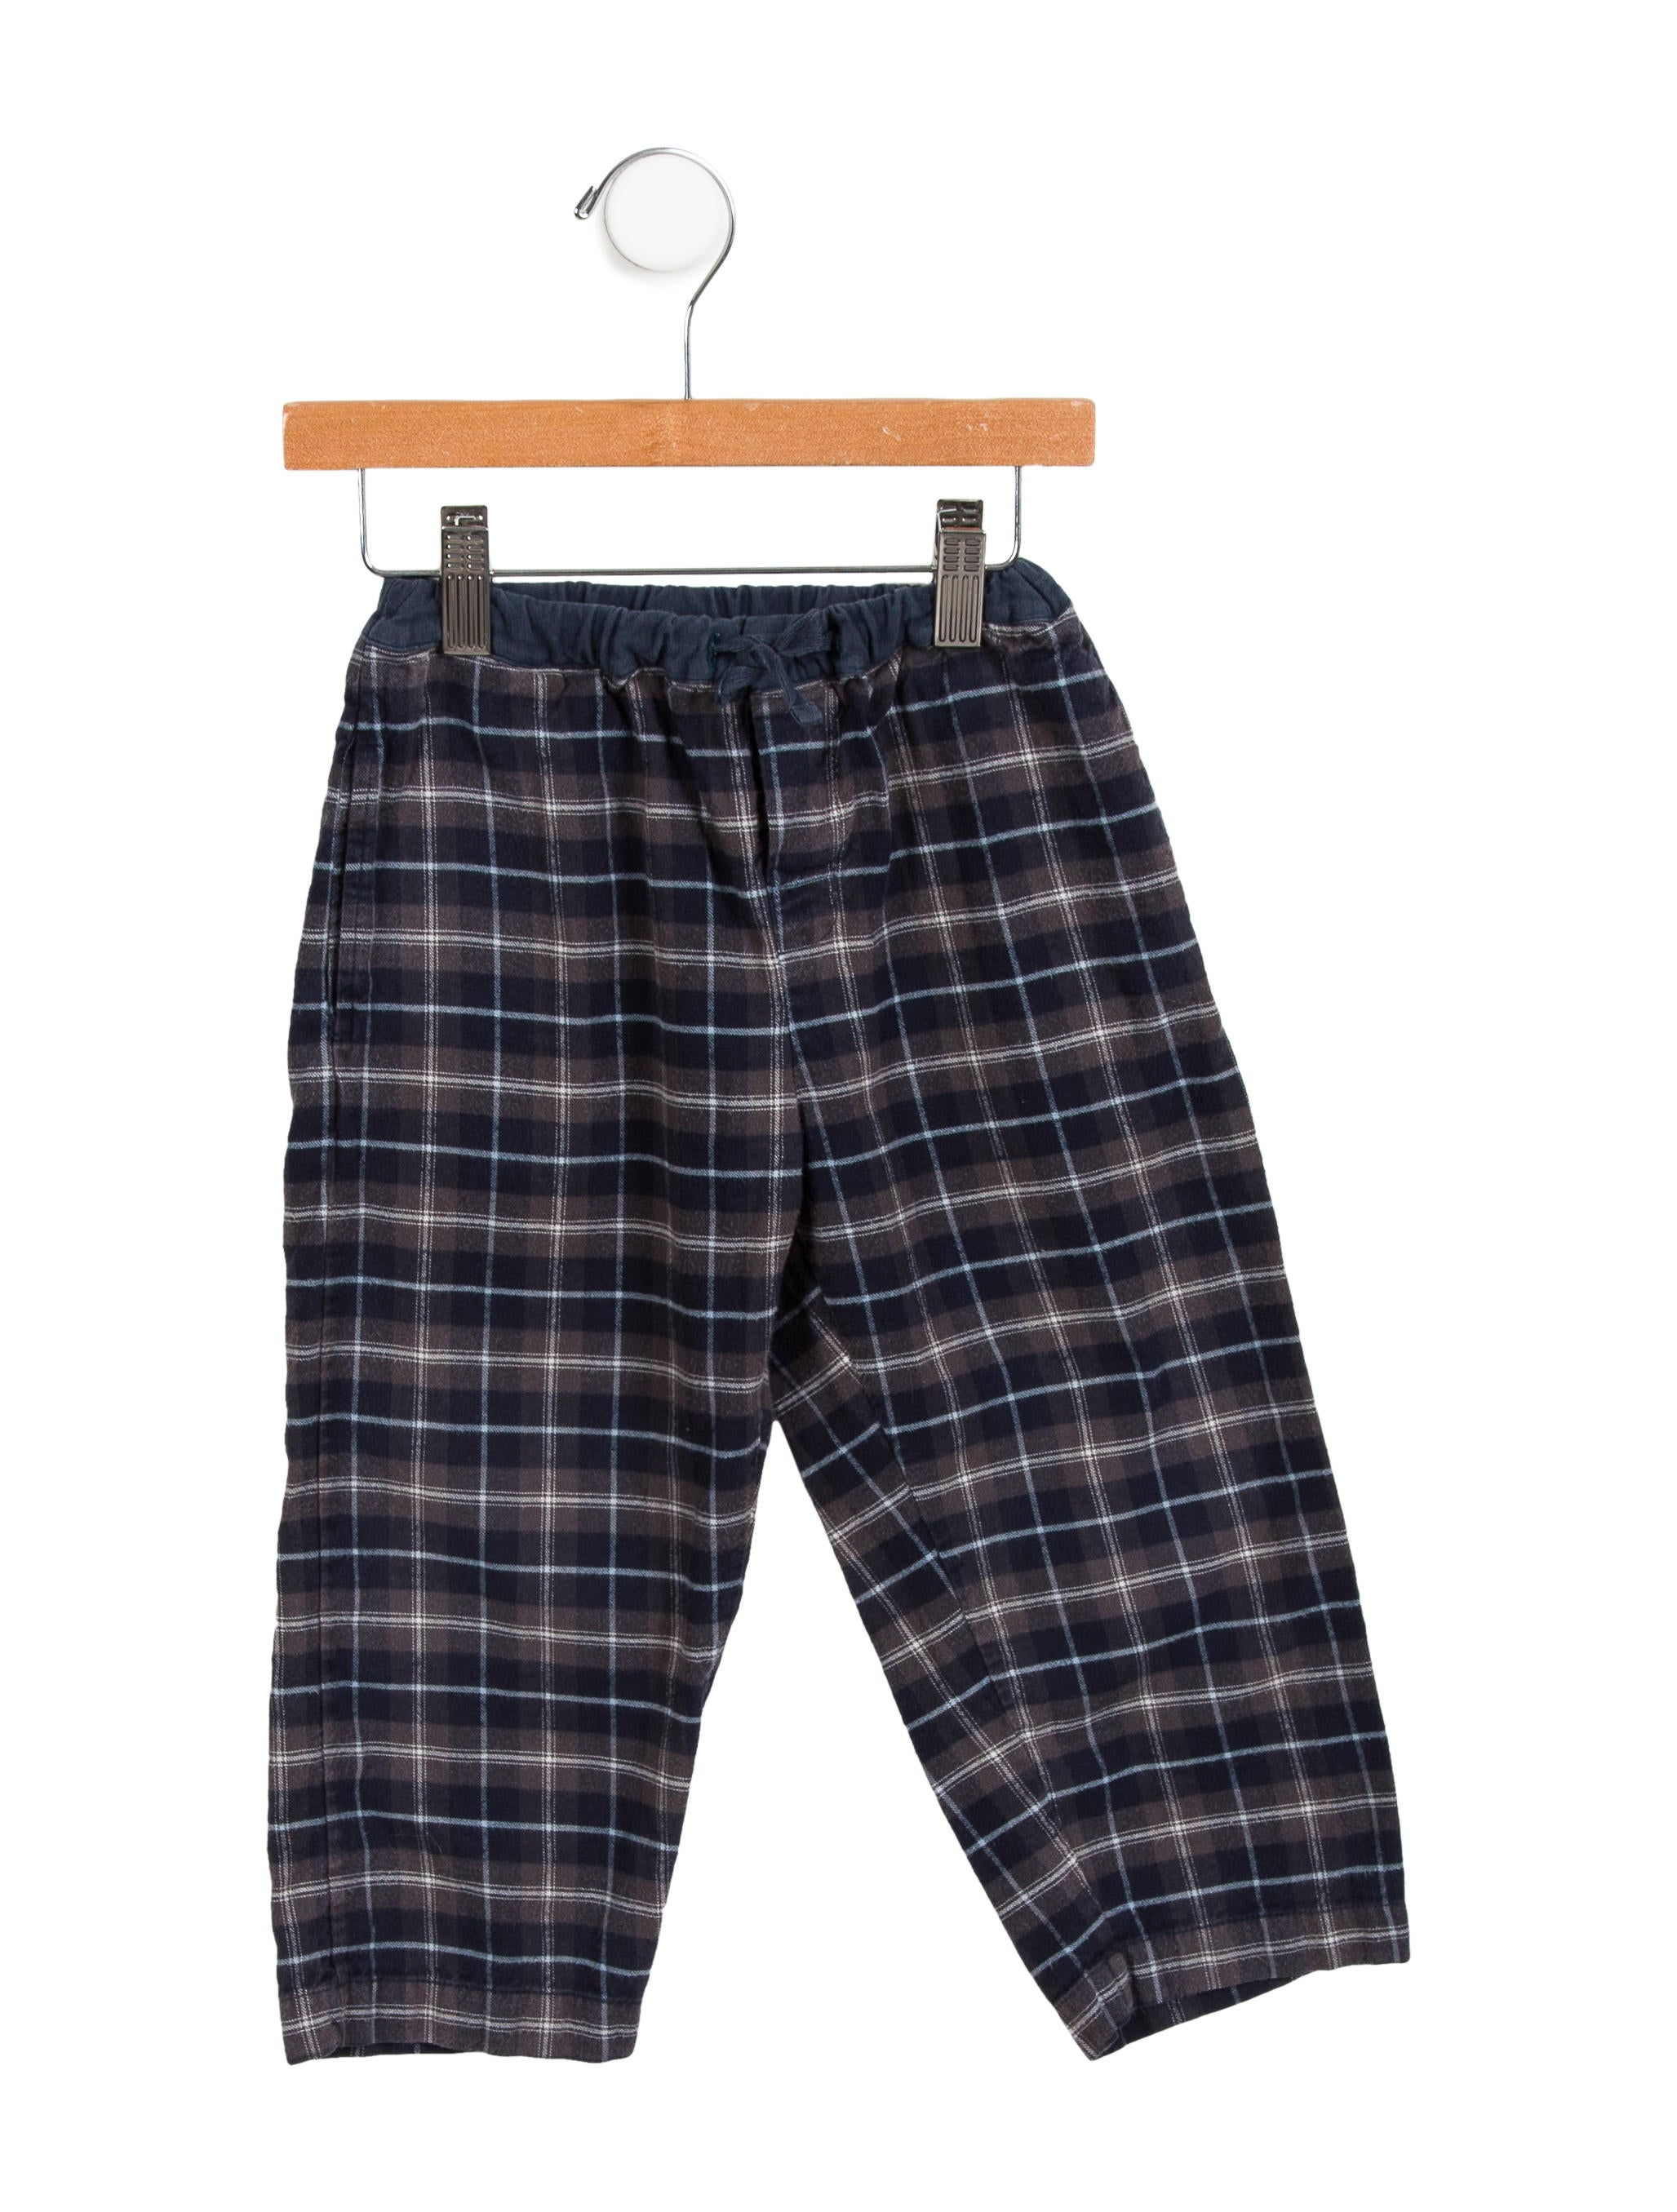 Sears' selection of pajama sets, lounge pants and character apparel make it easy to find boys' sleepwear that is as comfy as it is fun. You'll find a wide variety of character pajamas, featuring your little man's favorite cartoons on them.